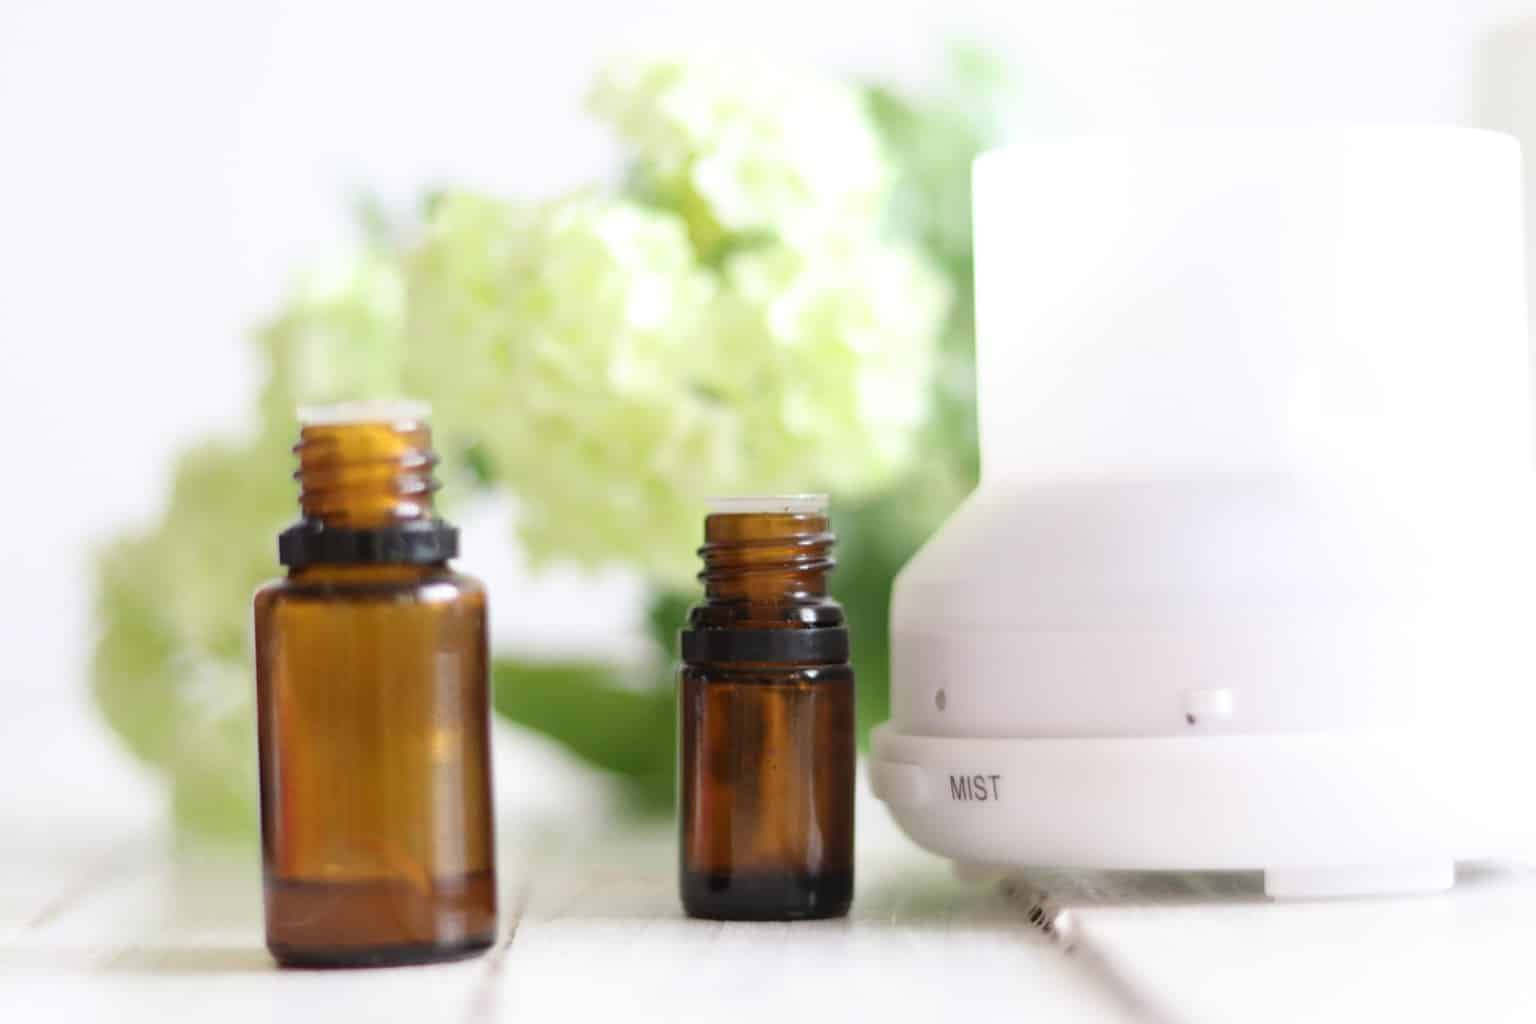 Essential oil bottles with flowers and oil diffuser in background.